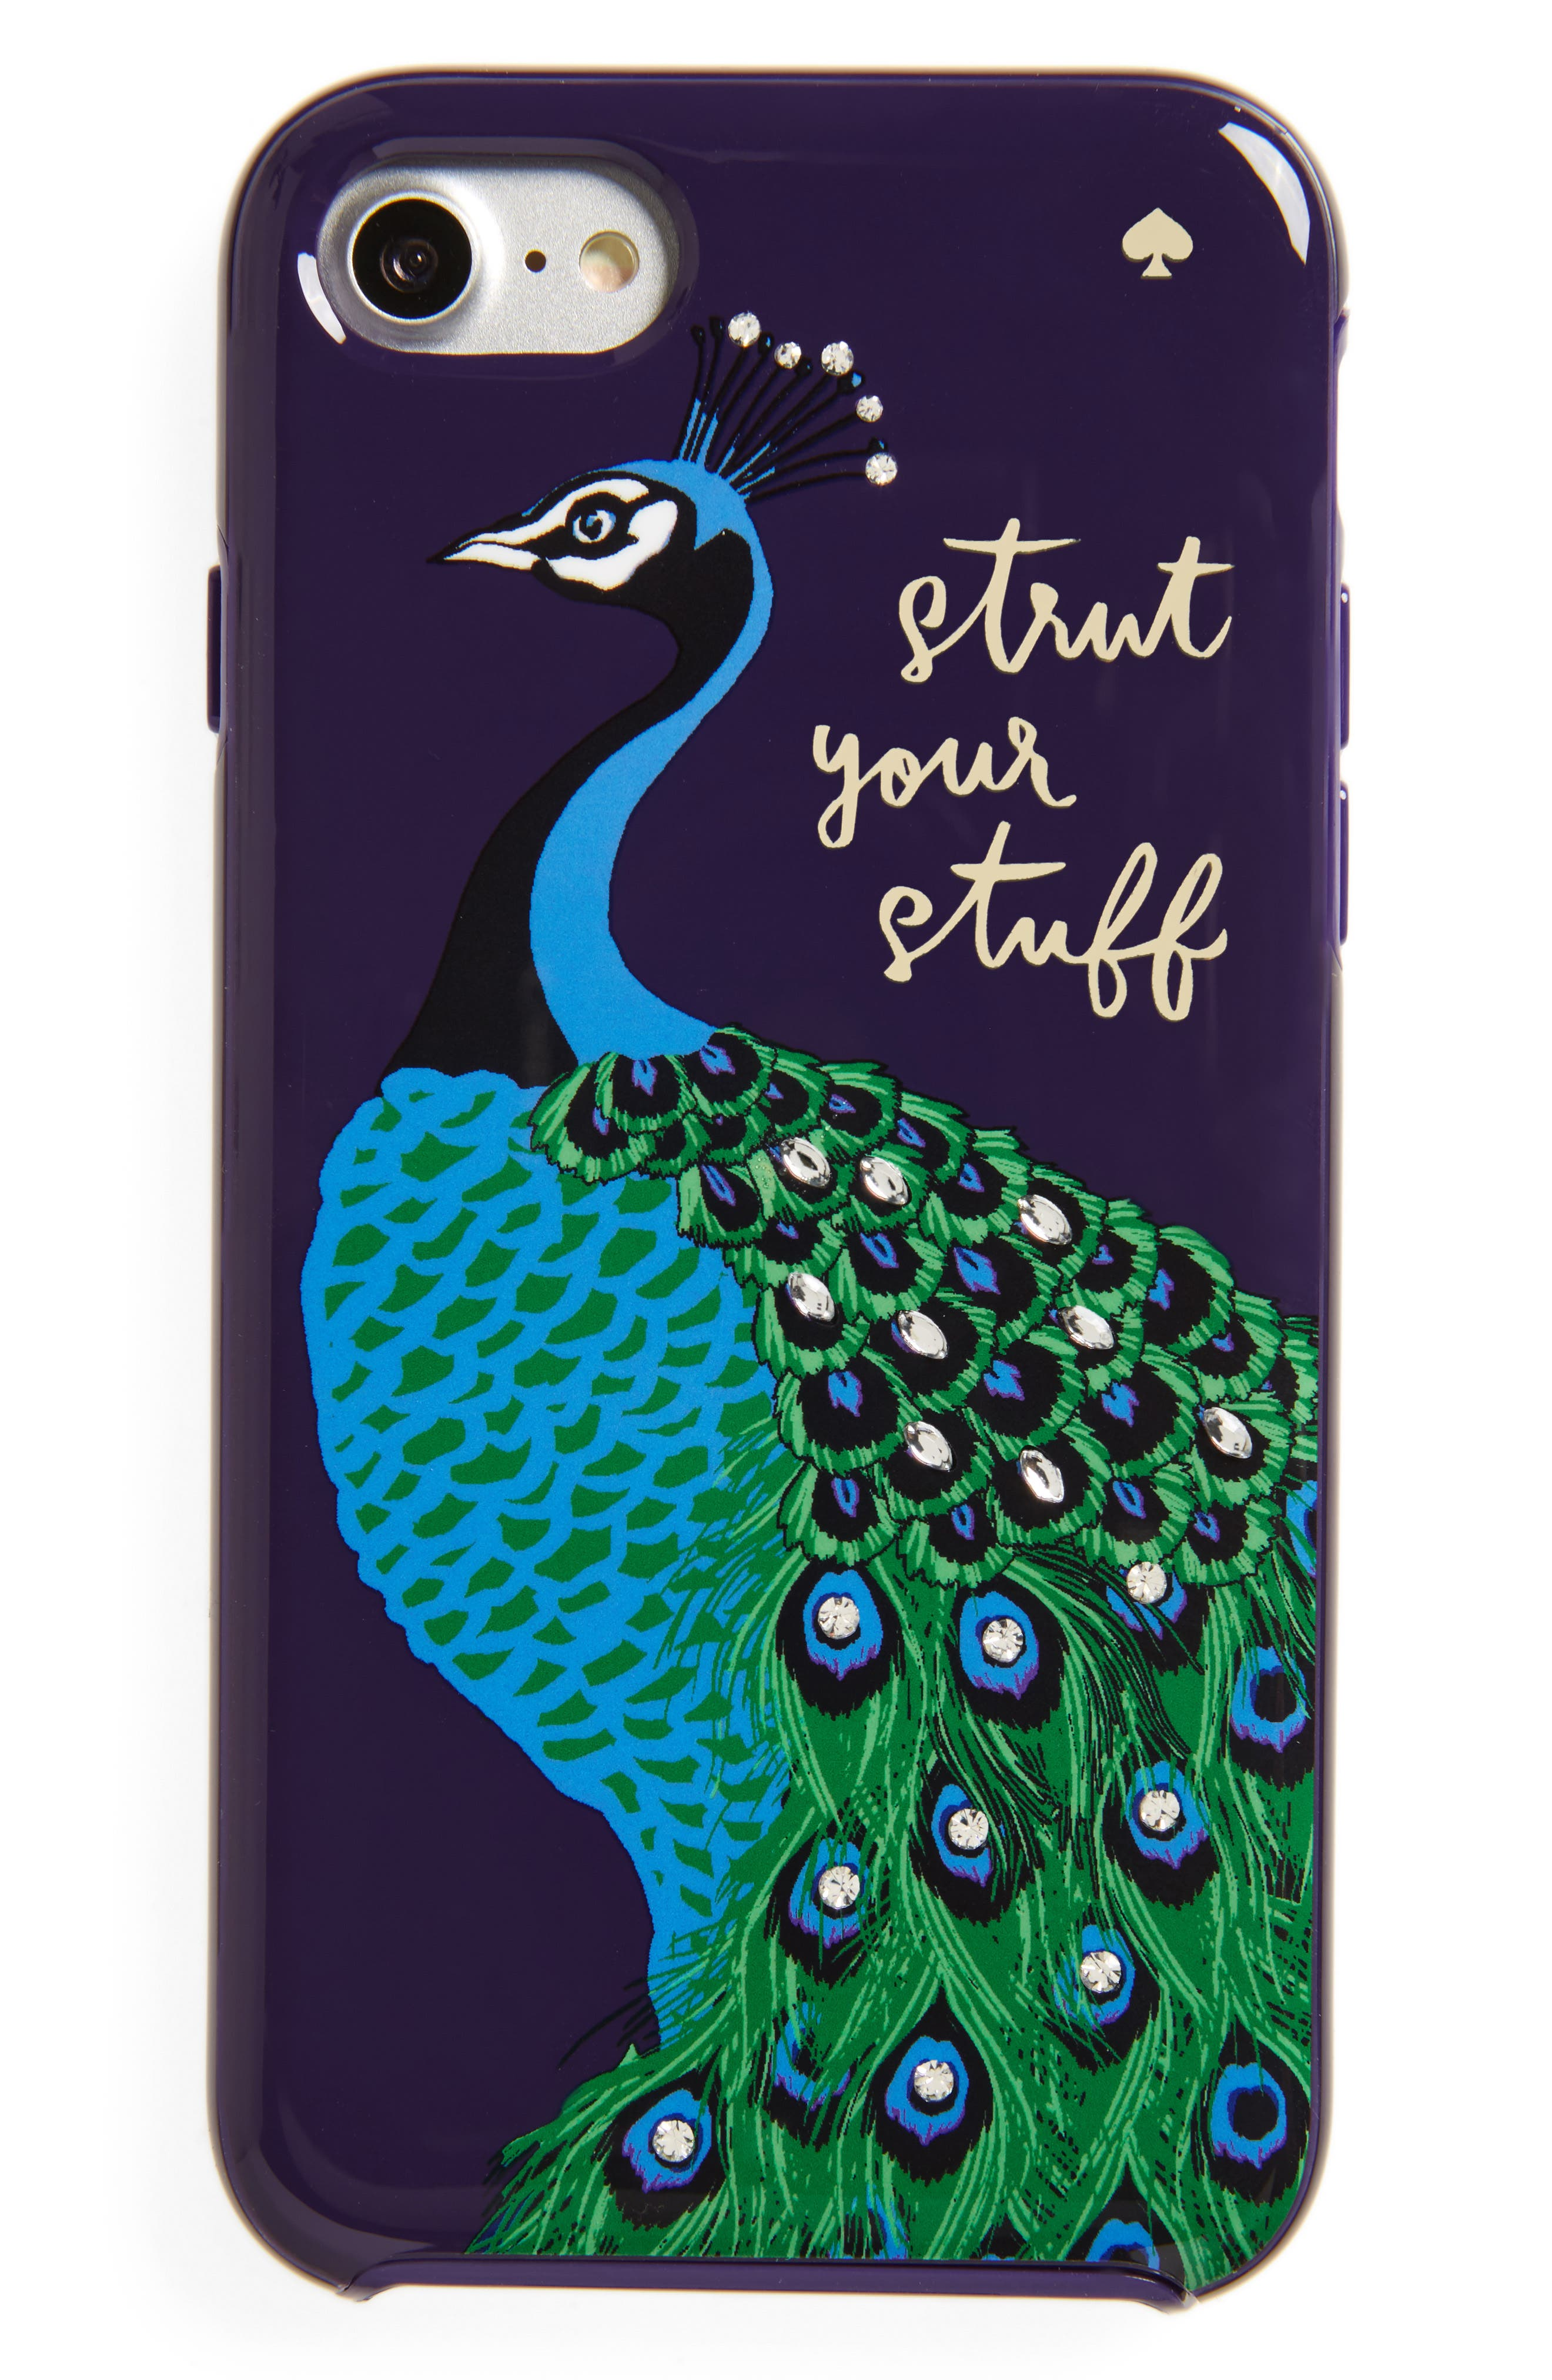 kate spade new york strut your stuff iPhone 6/7 & 6/7 Plus Case